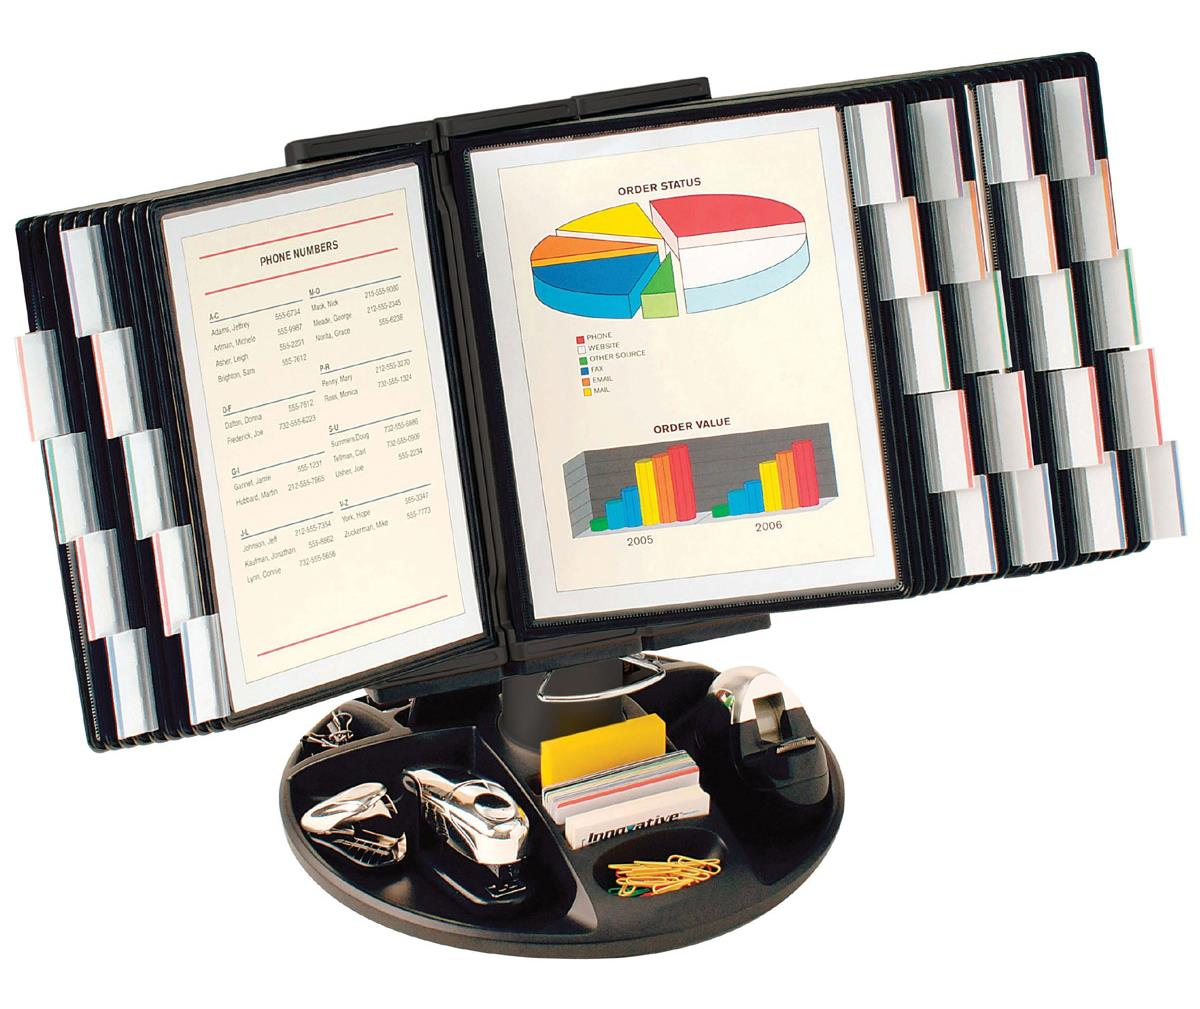 Desktop Document Holder Holds Up To 60 A4 Or Letter Sized